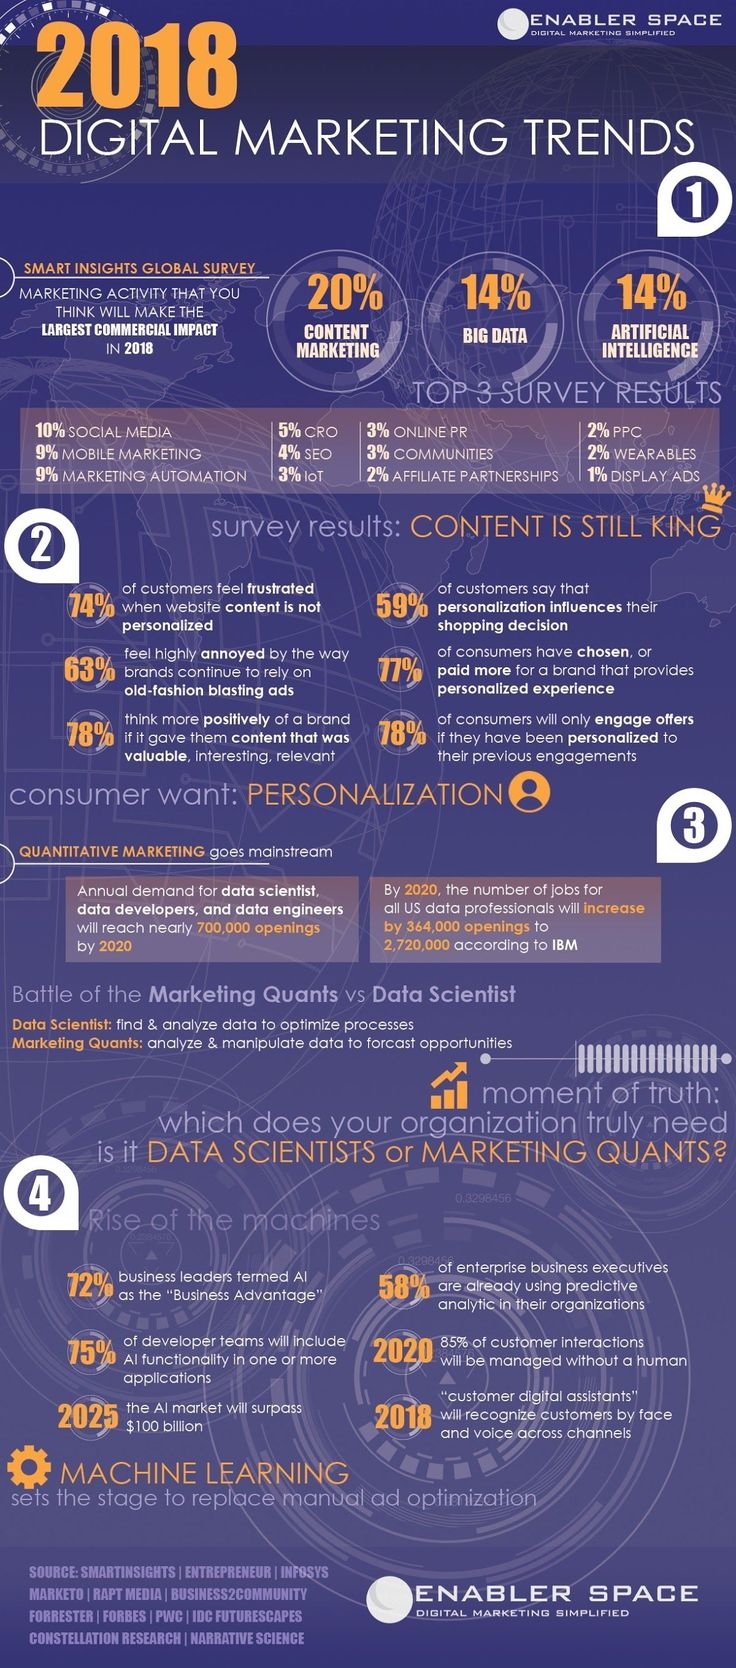 2018 Digital Marketing Trends and Statistics #digitalmarketing #strategy #2018 #DigitalMarketingTips